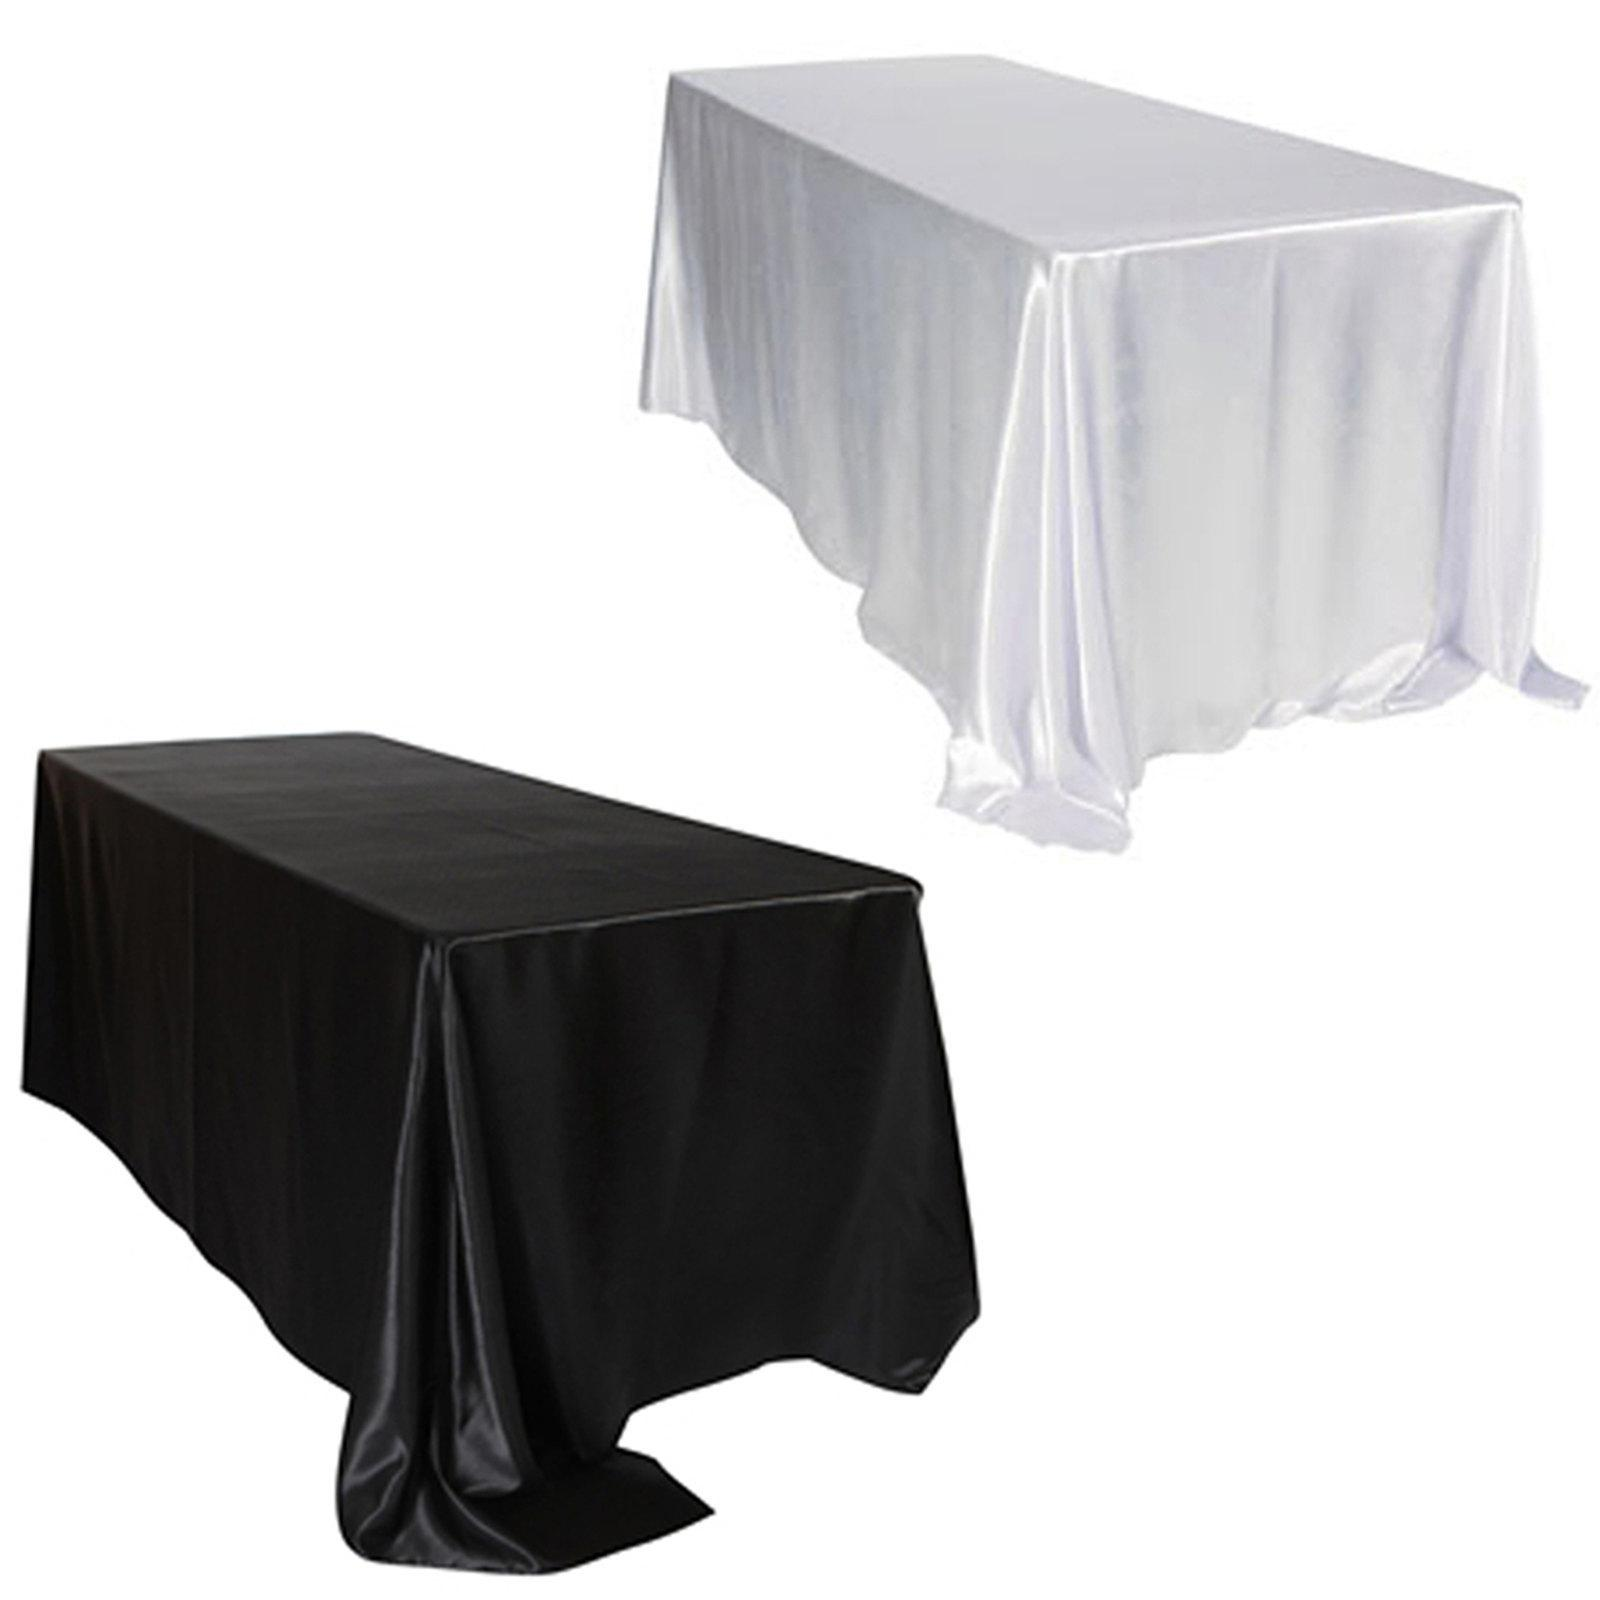 228x335cm/145x320cm White/black Double Stitched Edge Rectangular Satin Tablecloth Table Cloth For Wedding Christmas Decoration T8190620